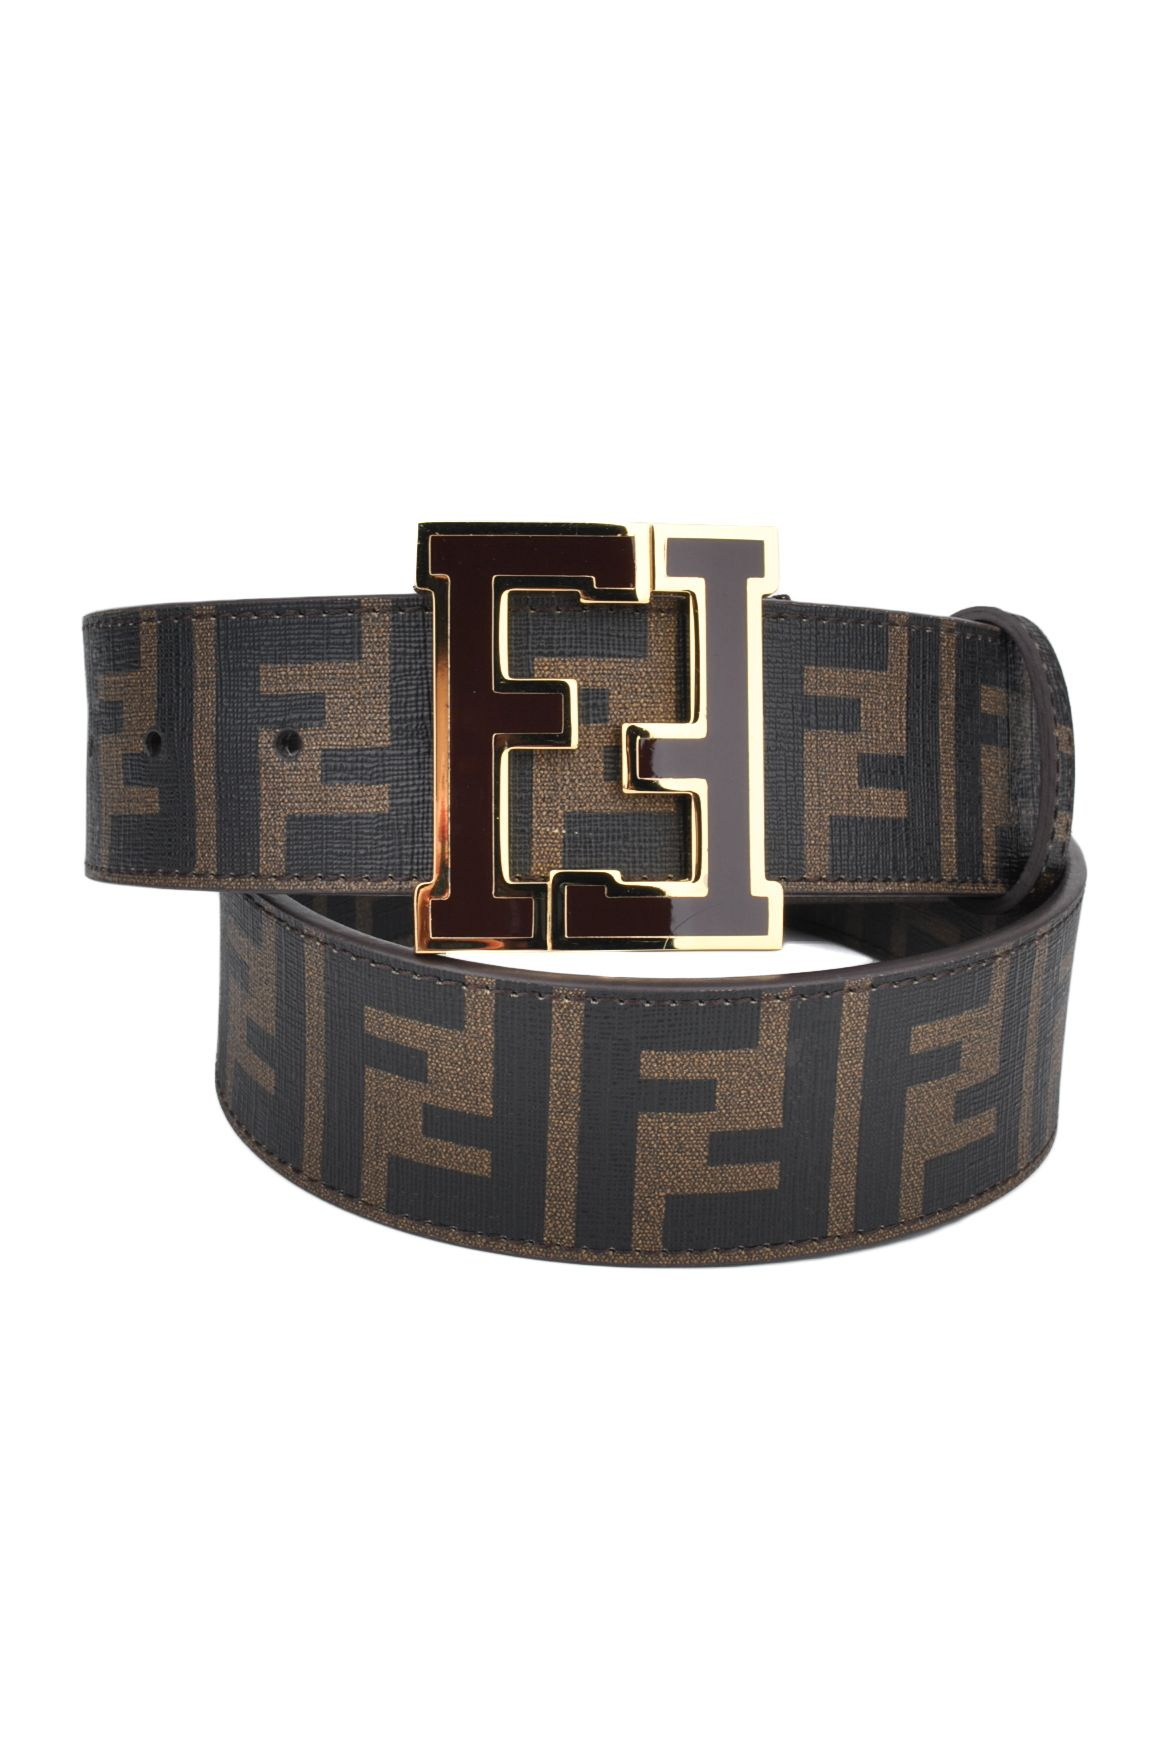 6f7853c63bf Fendi Brown Zucca College Belt Designer Clothing